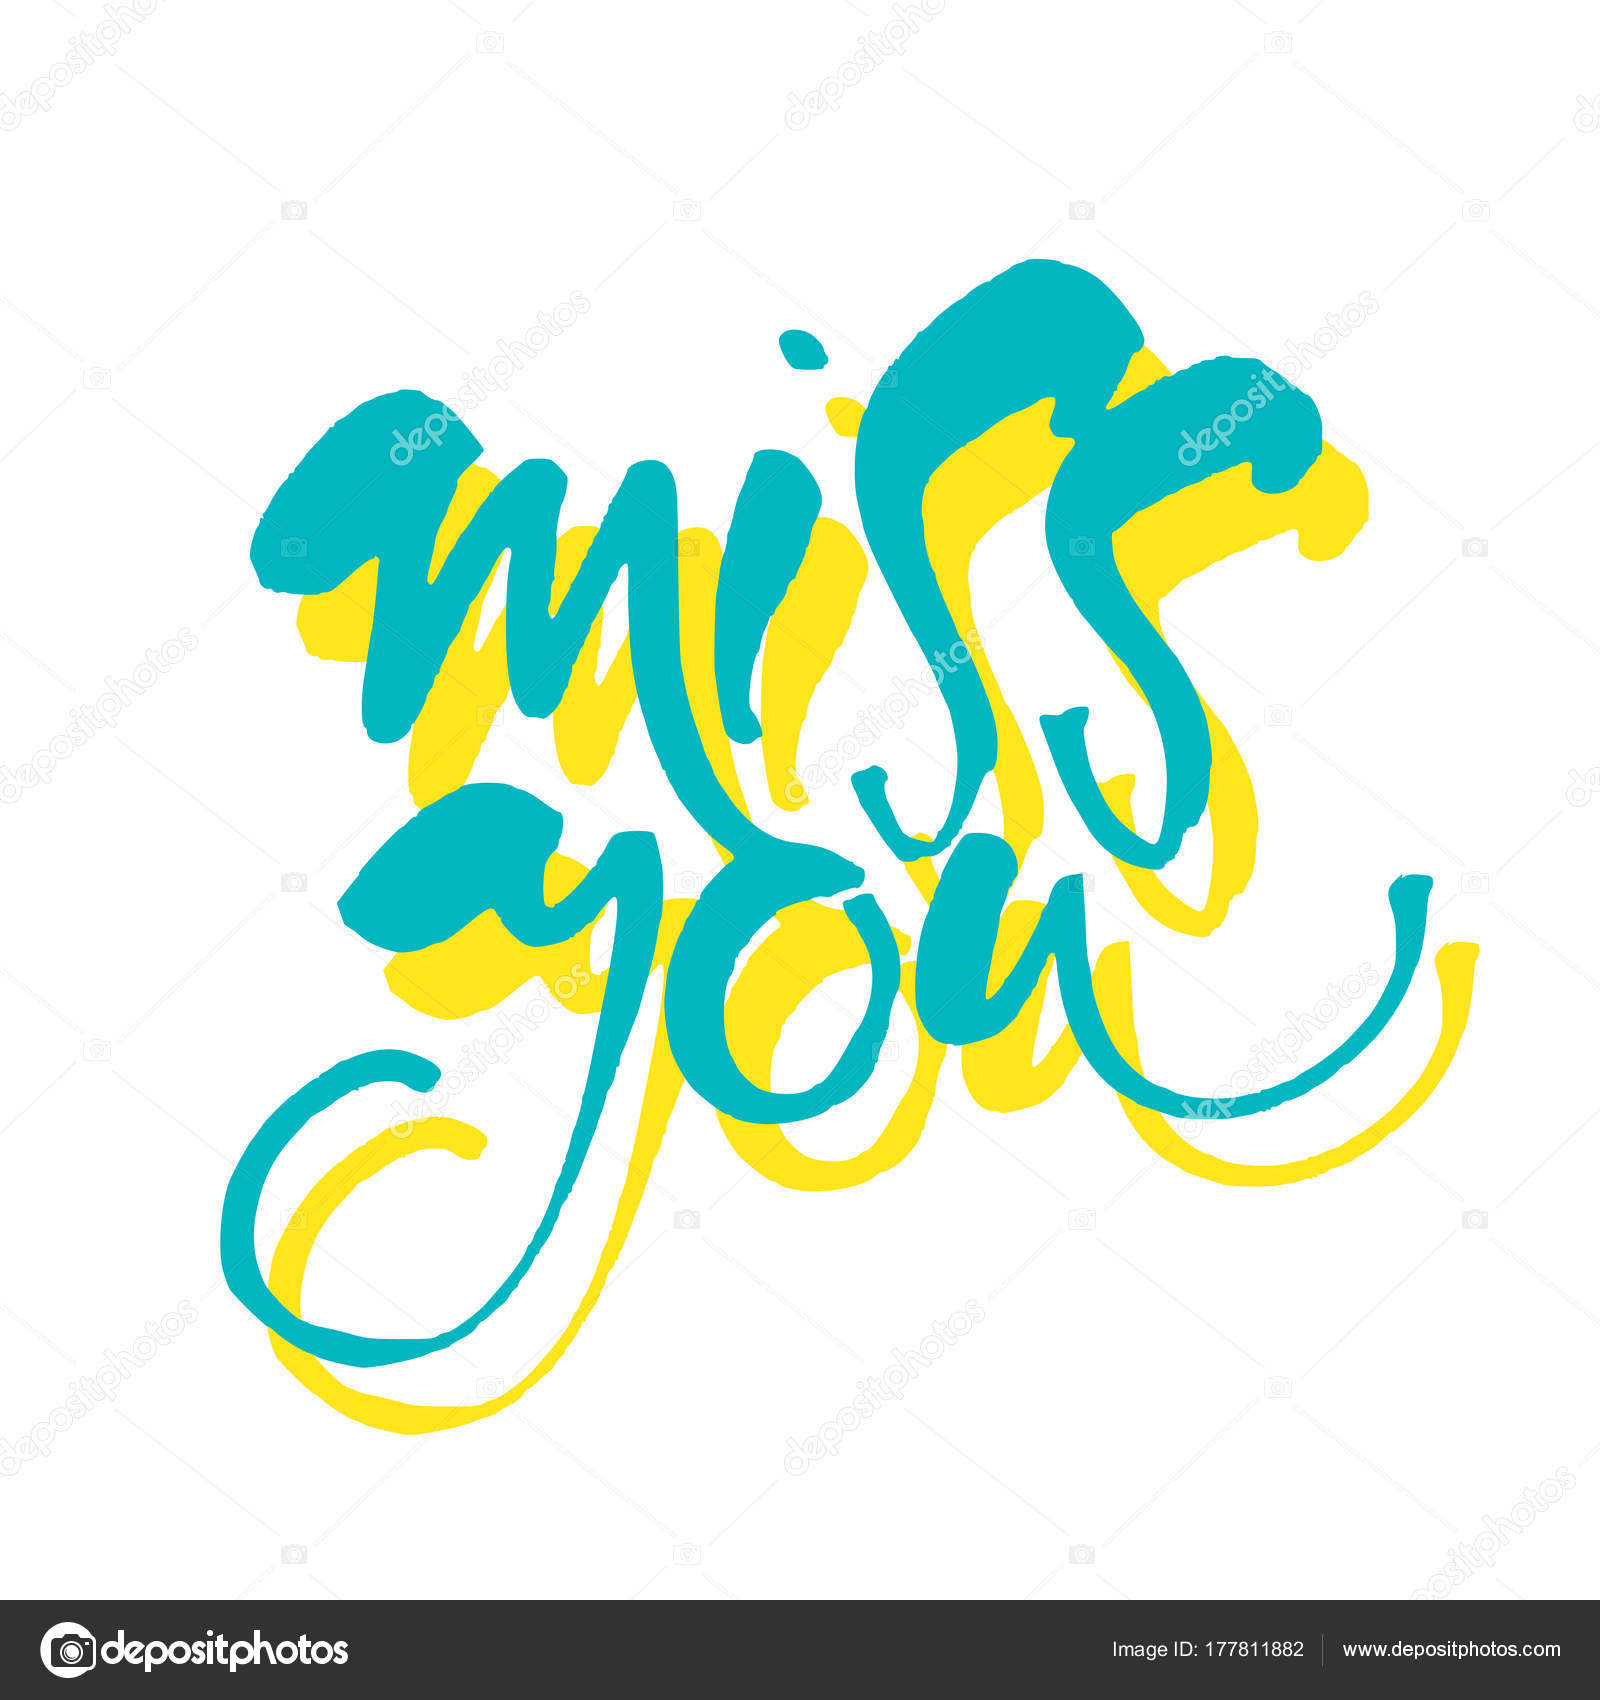 Miss you template stock vector antoshkaforever 177811882 miss you inscription greeting card with calligraphy typography for banner poster or apparel design vector illustration vector by antoshkaforever kristyandbryce Image collections